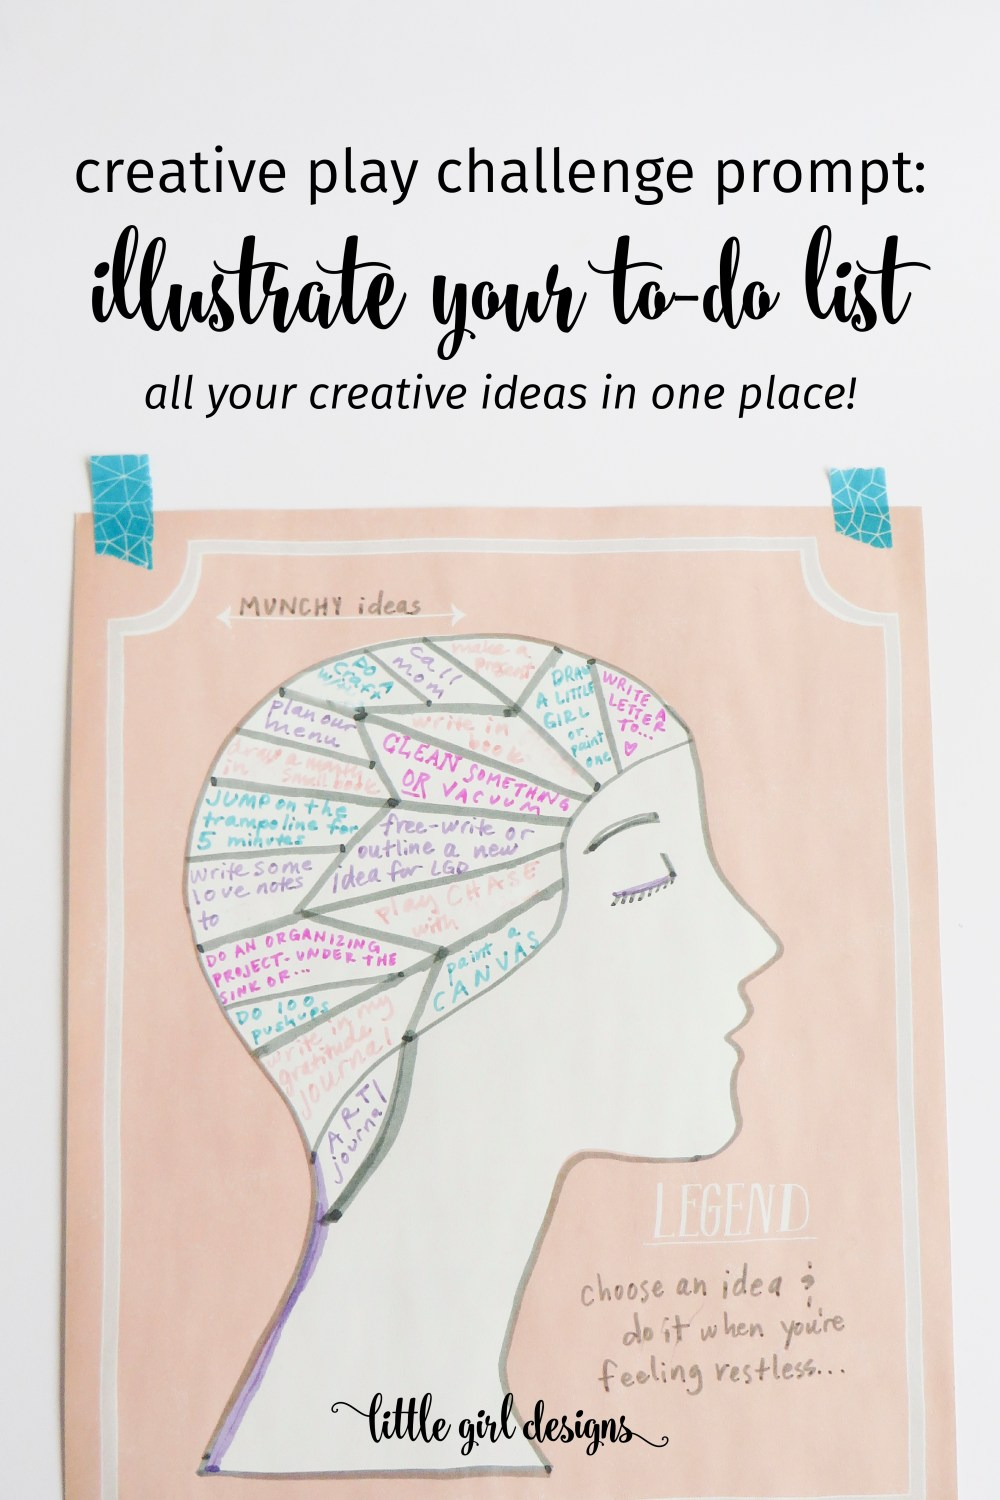 Put all your creative ideas in one place with an illustrated to-do list! I love this idea and it makes it more likely that I'll post it somewhere where I can see it daily. :)